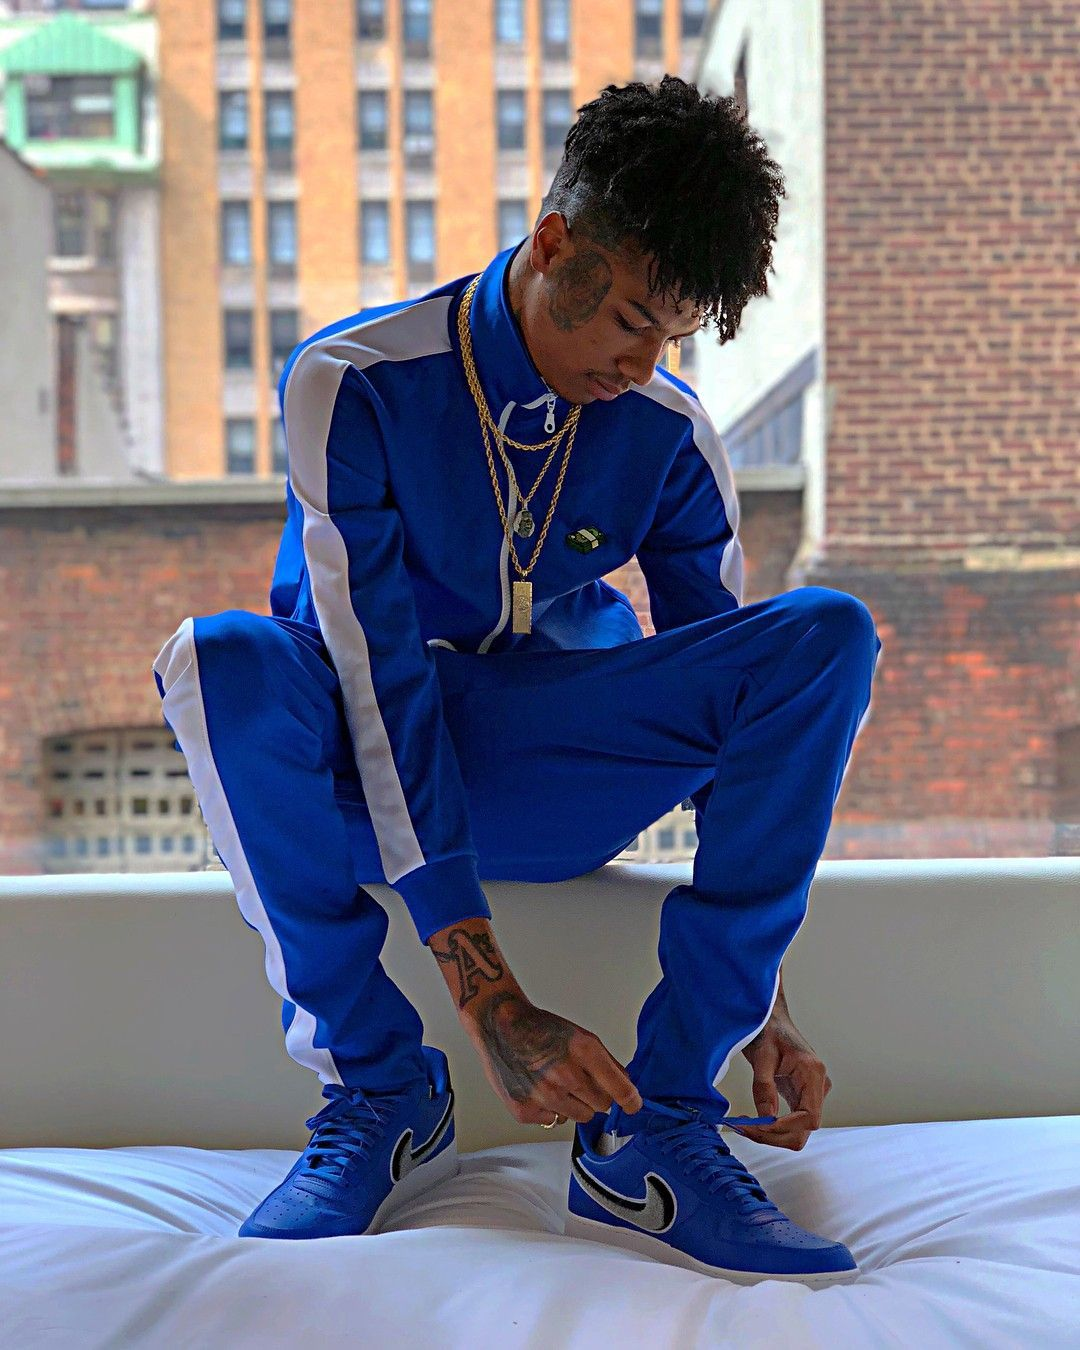 Blueface Wallpapers - Top Free Blueface Backgrounds ...